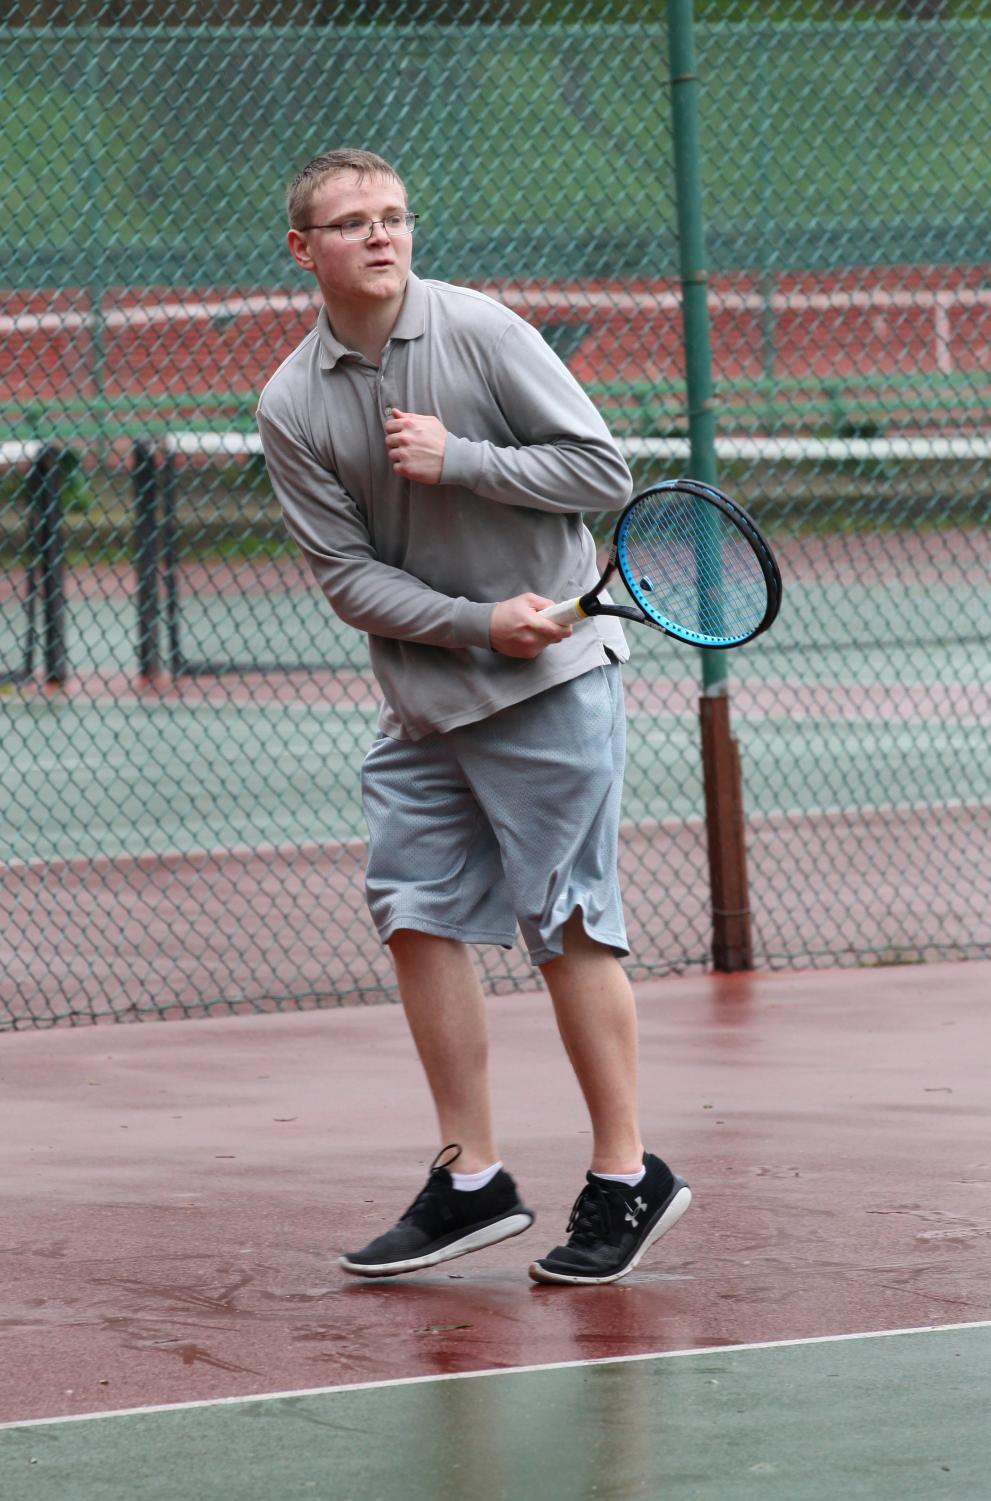 Caelan Bevan-Abel '19 warms up before a tennis match at Balboa.